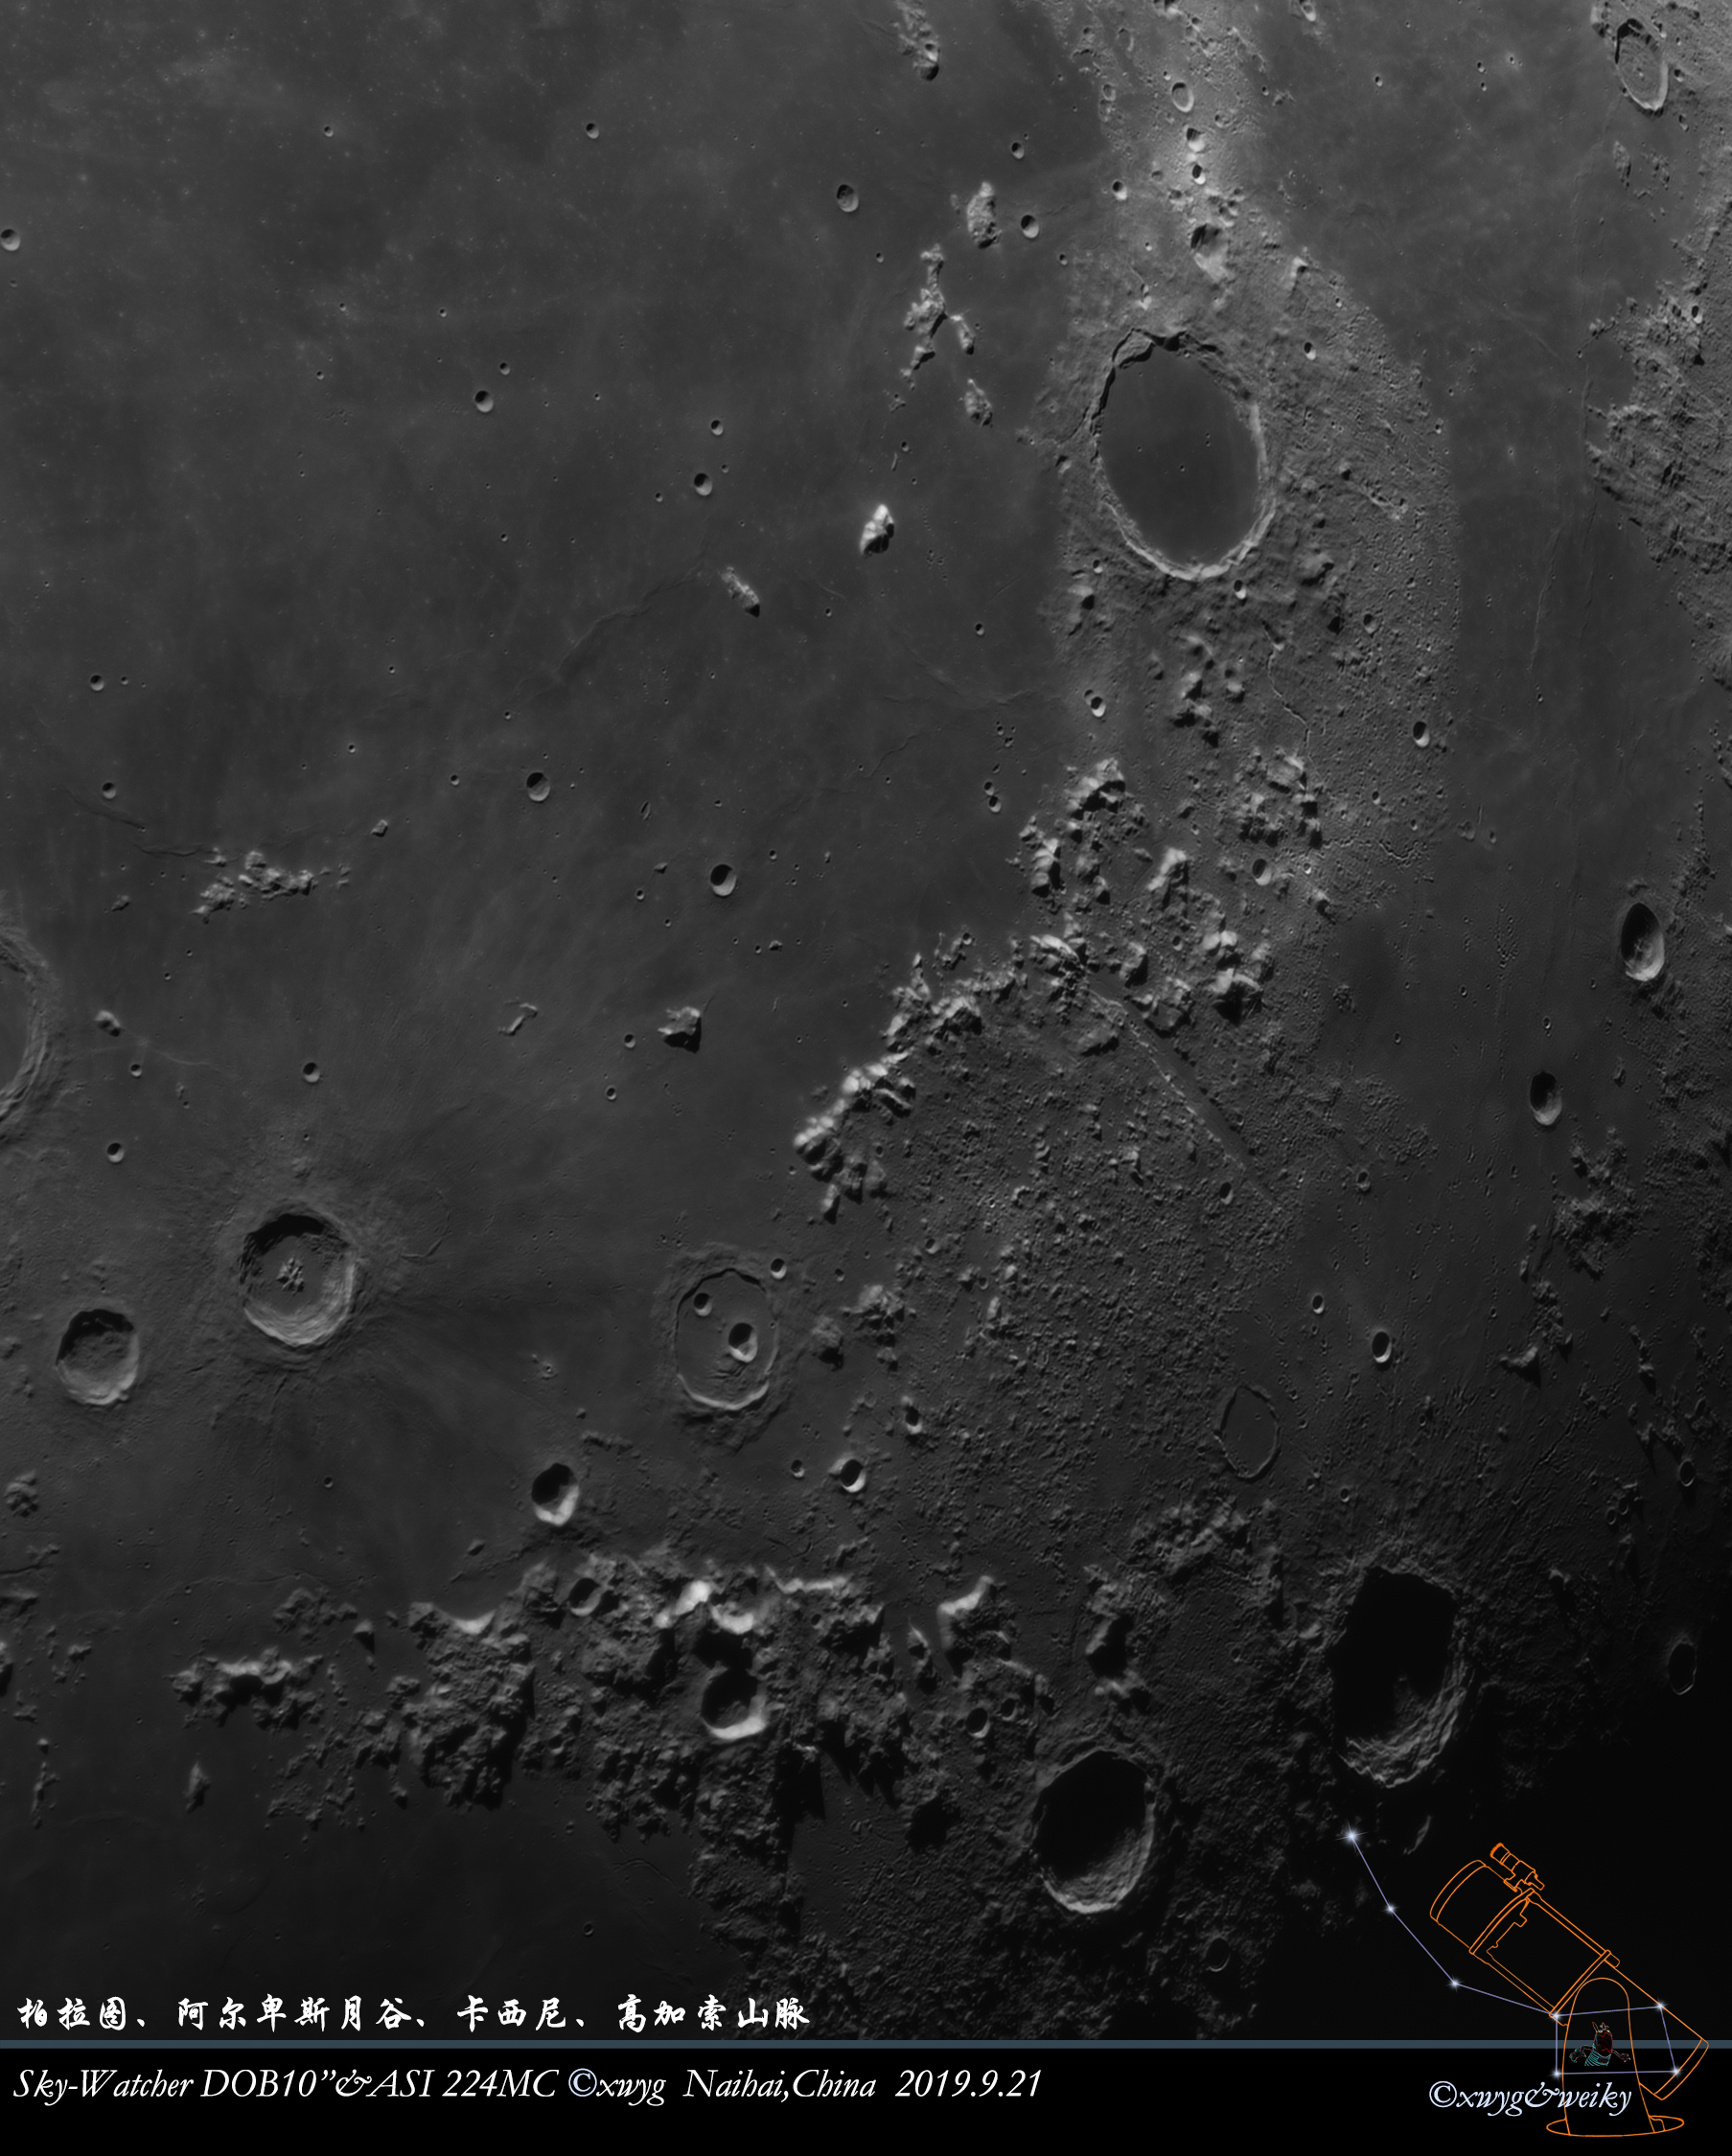 Capture 2019-09-20T05_43_09_lapl4_ap1319 Panorama_F.jpg